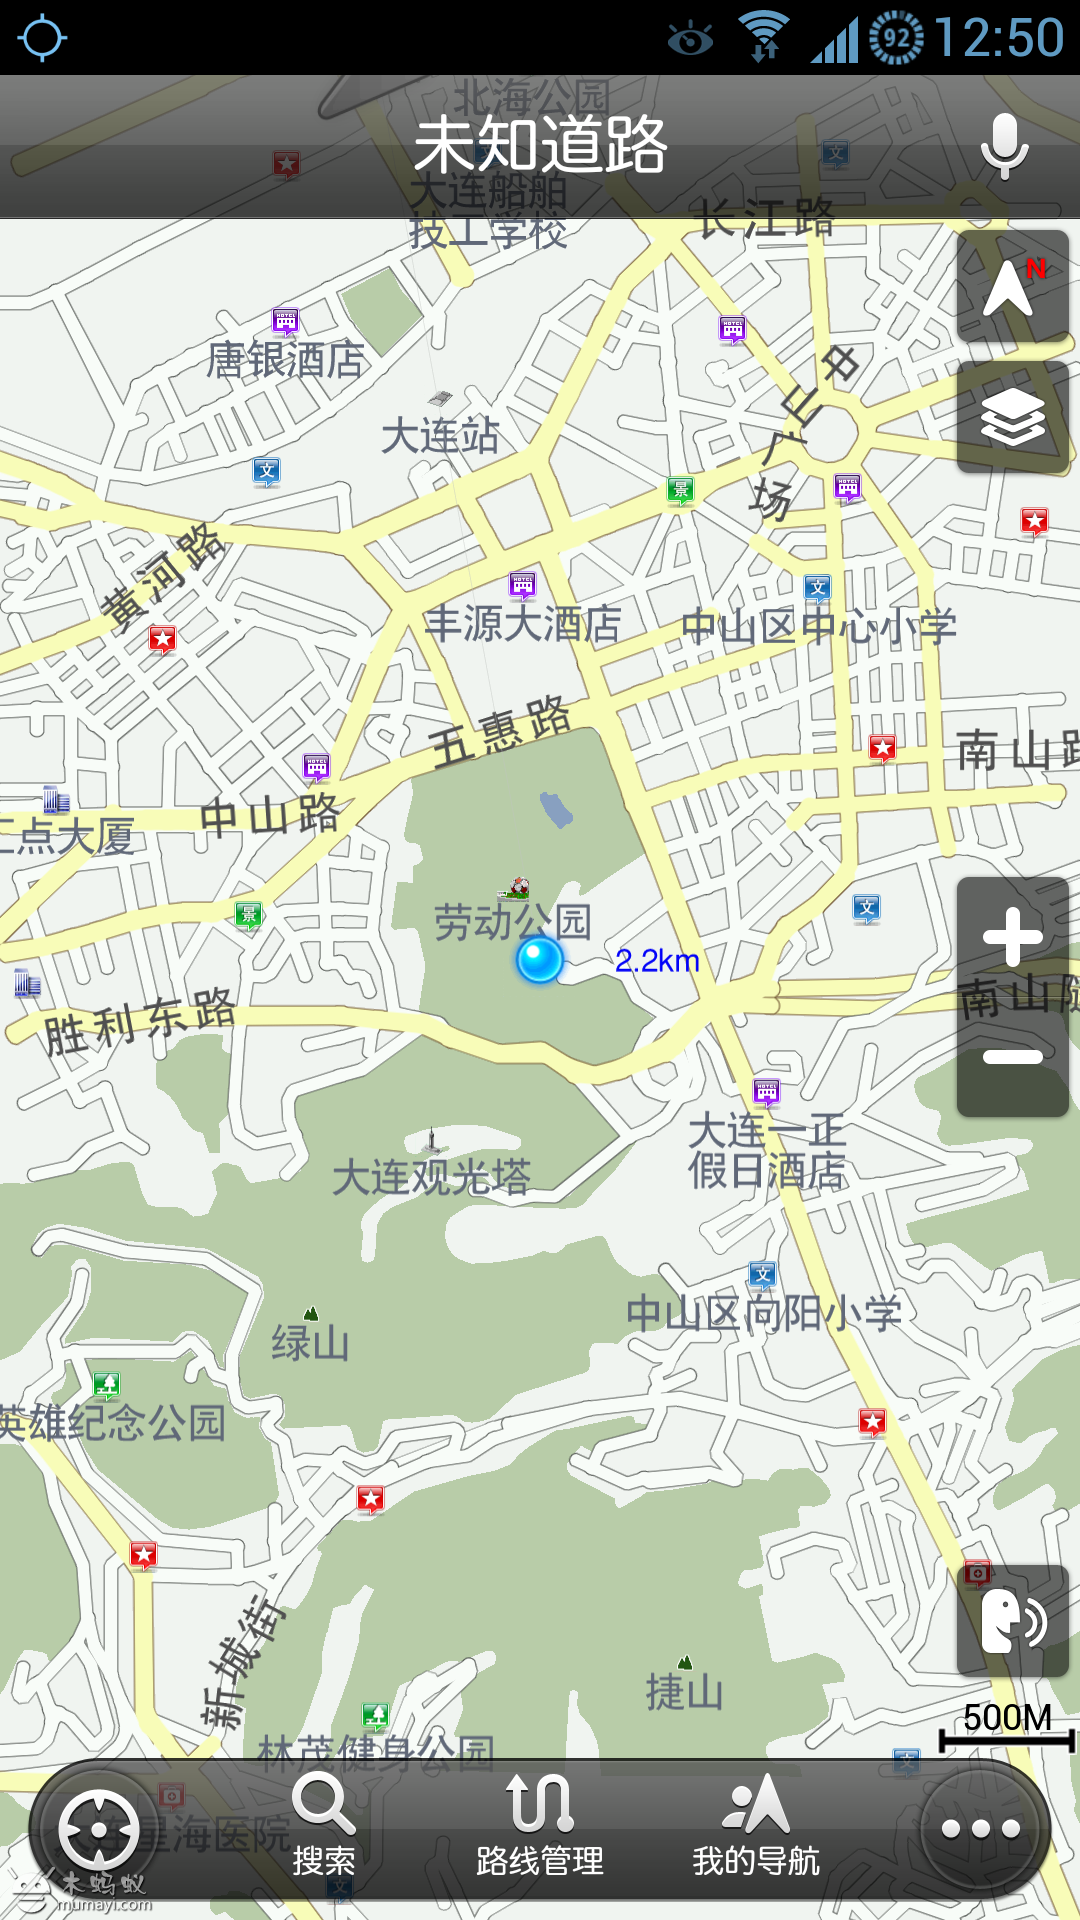 Screenshot_2013-08-10-12-50-33.png